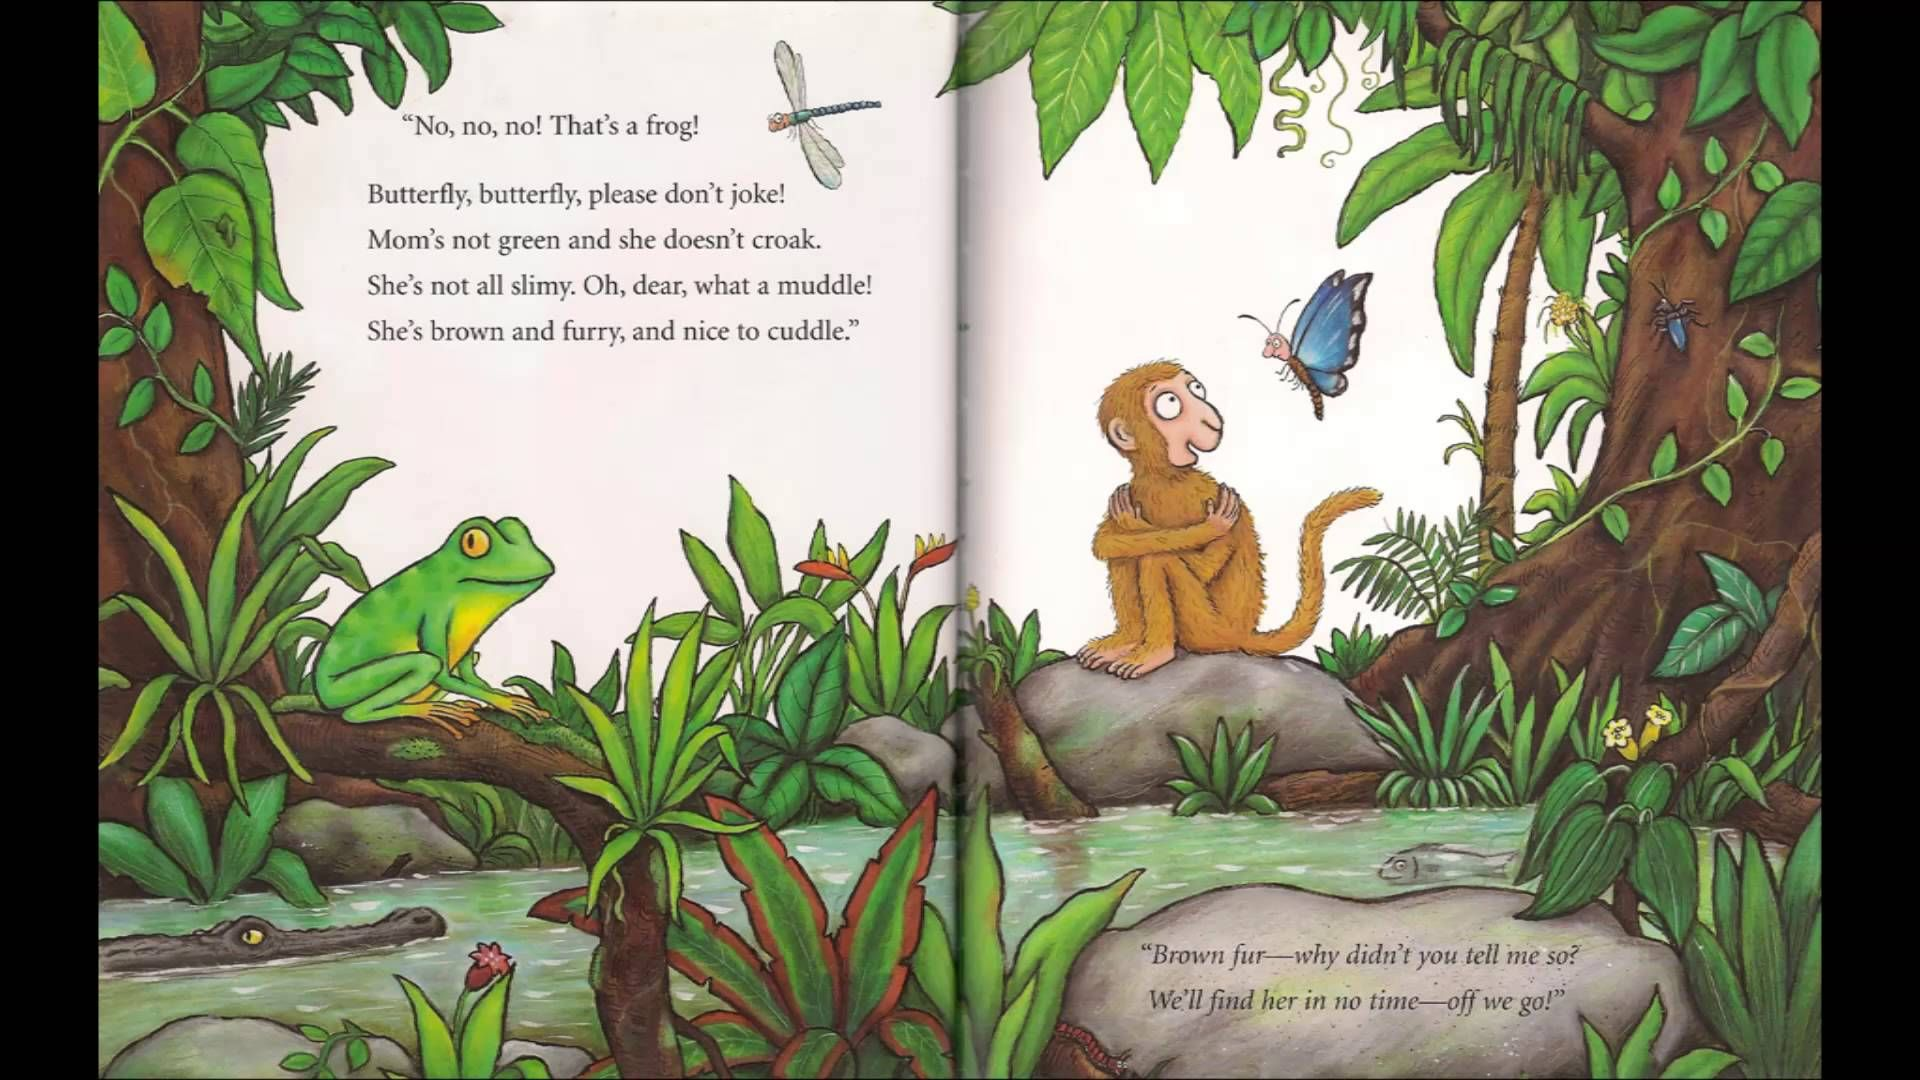 This Wonderful Book Written By Julia Donaldson And